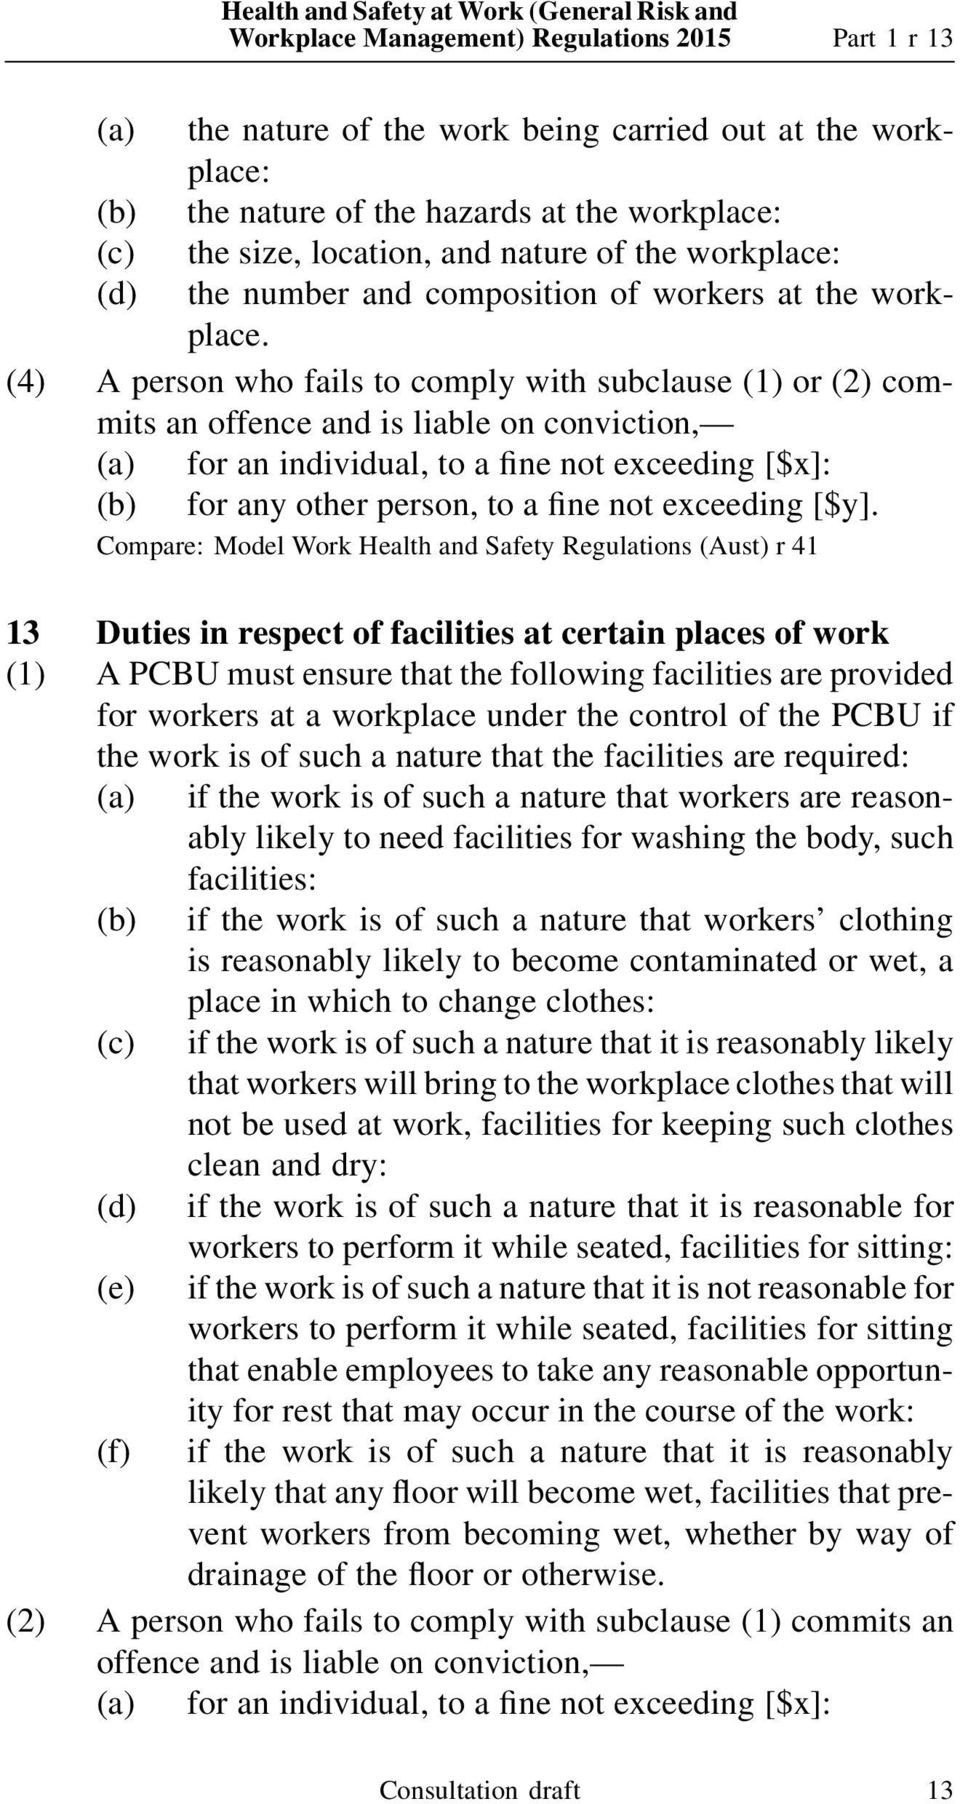 (4) A person who fails to comply with subclause (1) or (2) commits an Compare: Model Work Health and Safety Regulations (Aust) r 41 13 Duties in respect of facilities at certain places of work (1) A